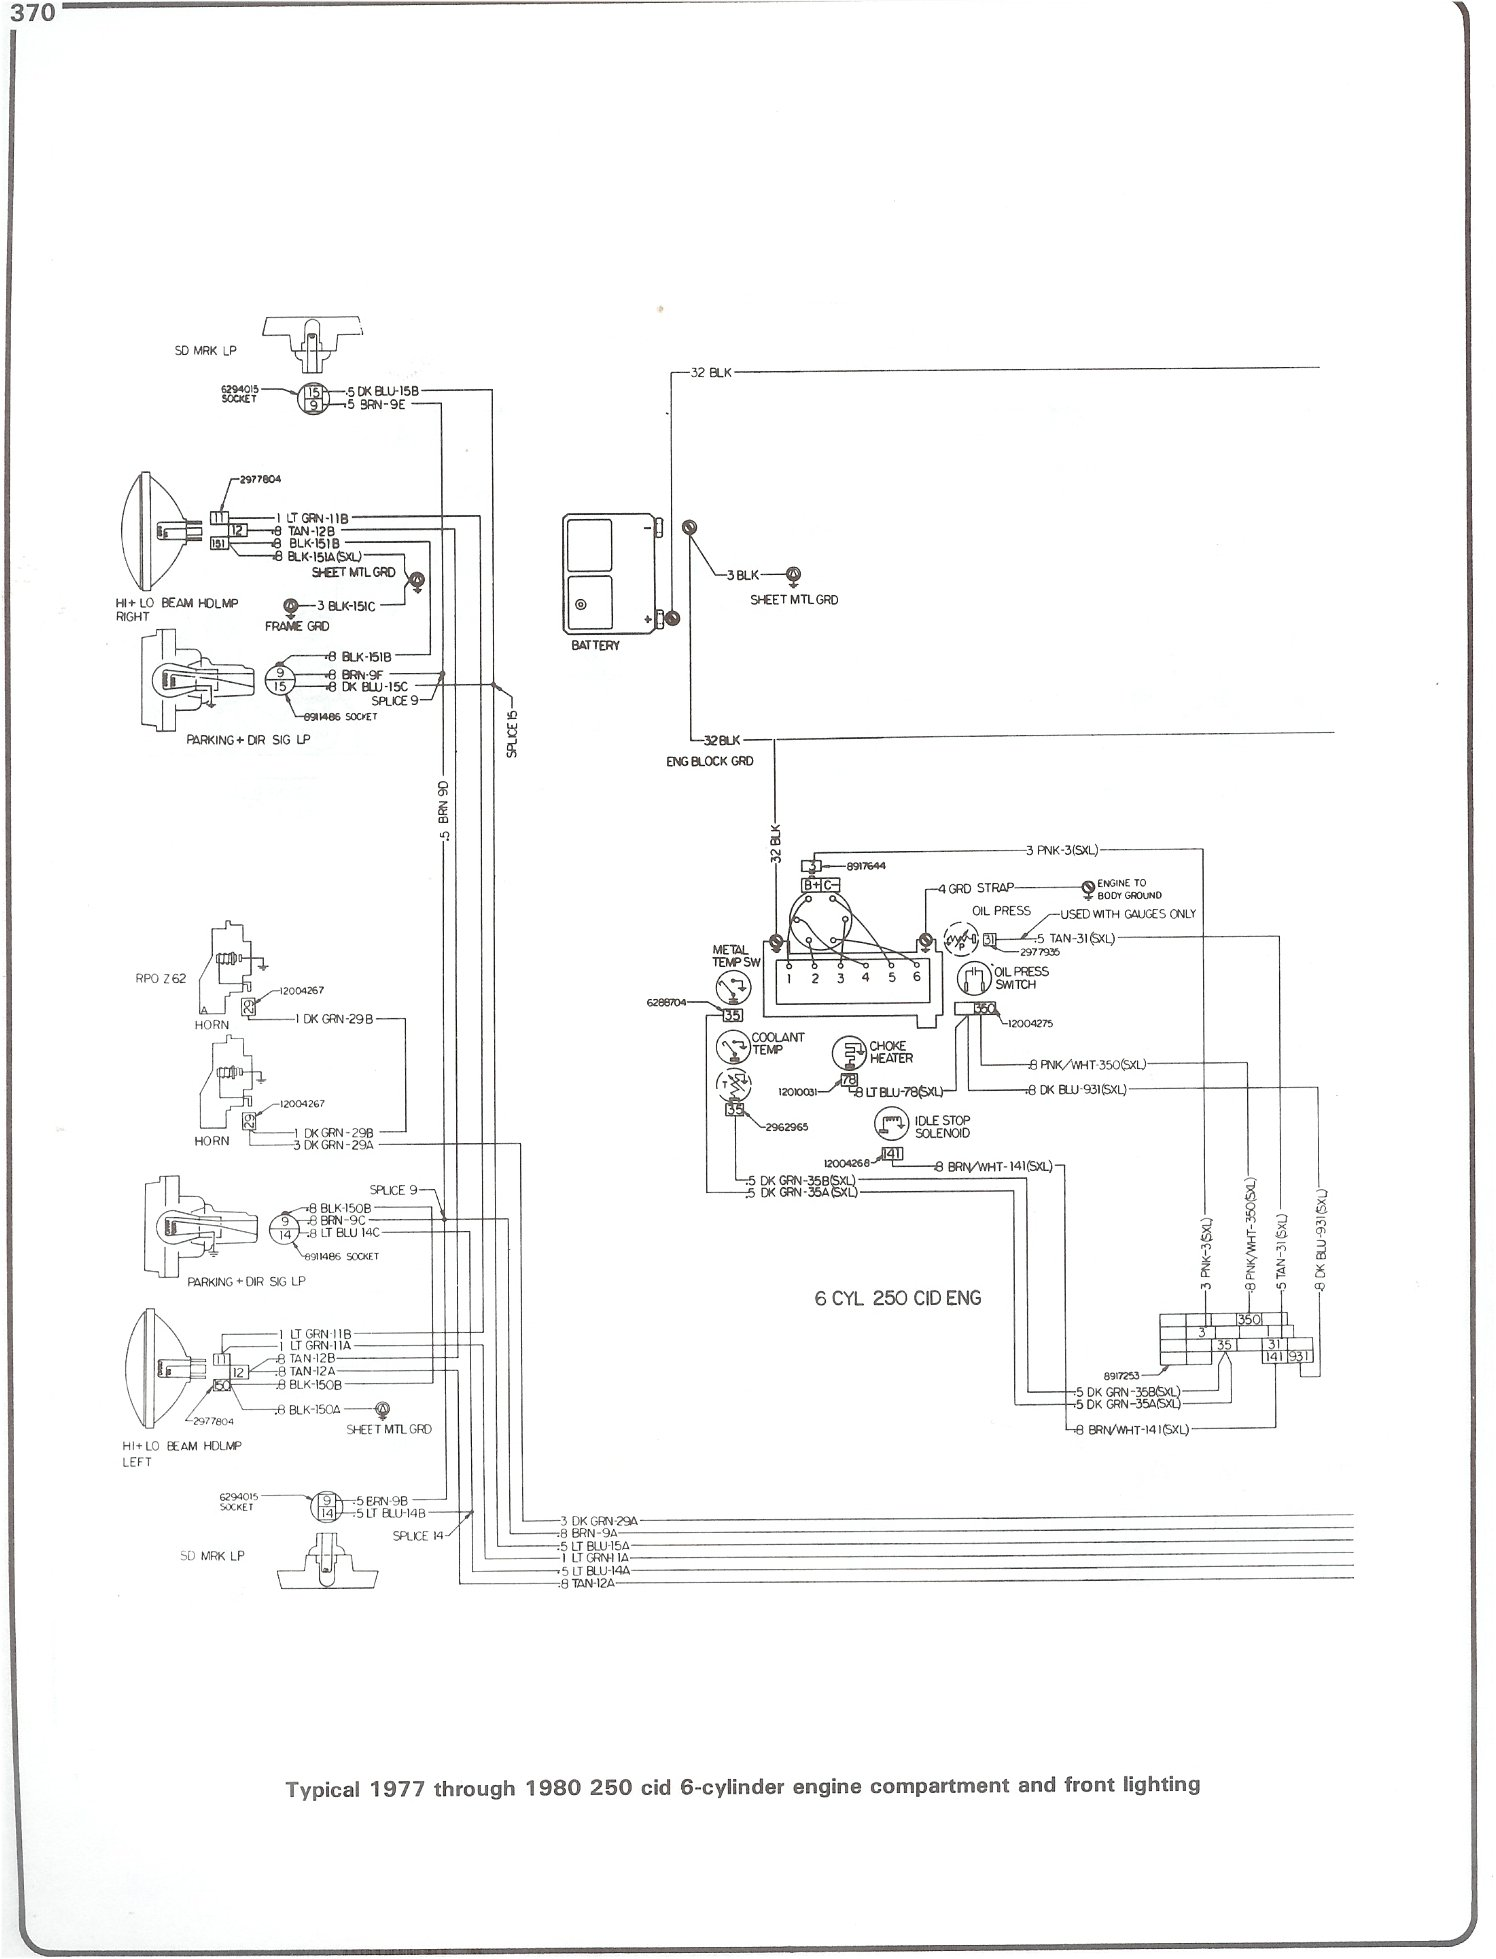 1981 Chevy Truck Fuel System Diagram Wiring Will Be A Thing Toshiba T300mvi Diagrams 85 Alternator Data Schema Rh Site De Joueurs Com 2005